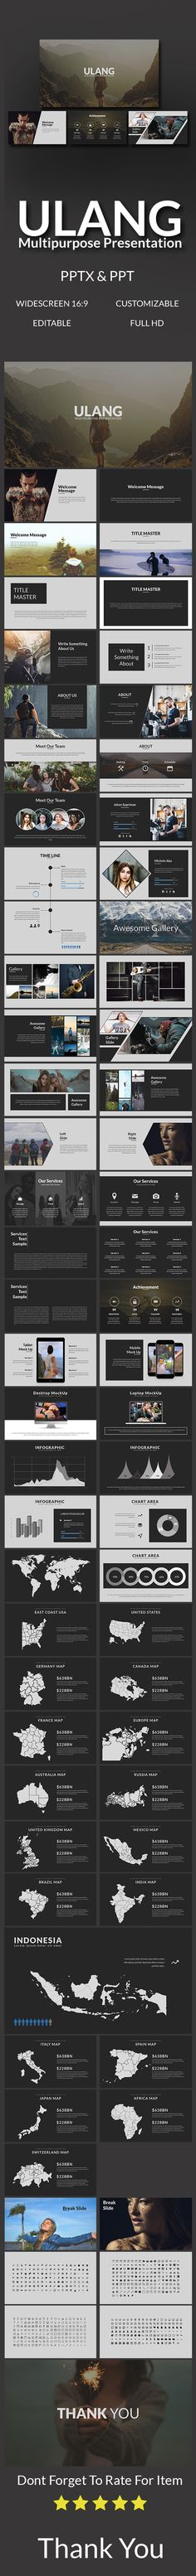 Ulang Multipurpose Template - #PowerPoint #Templates Presentation Templates Download here: https://graphicriver.net/item/ulang-multipurpose-template/19728708?ref=alena994